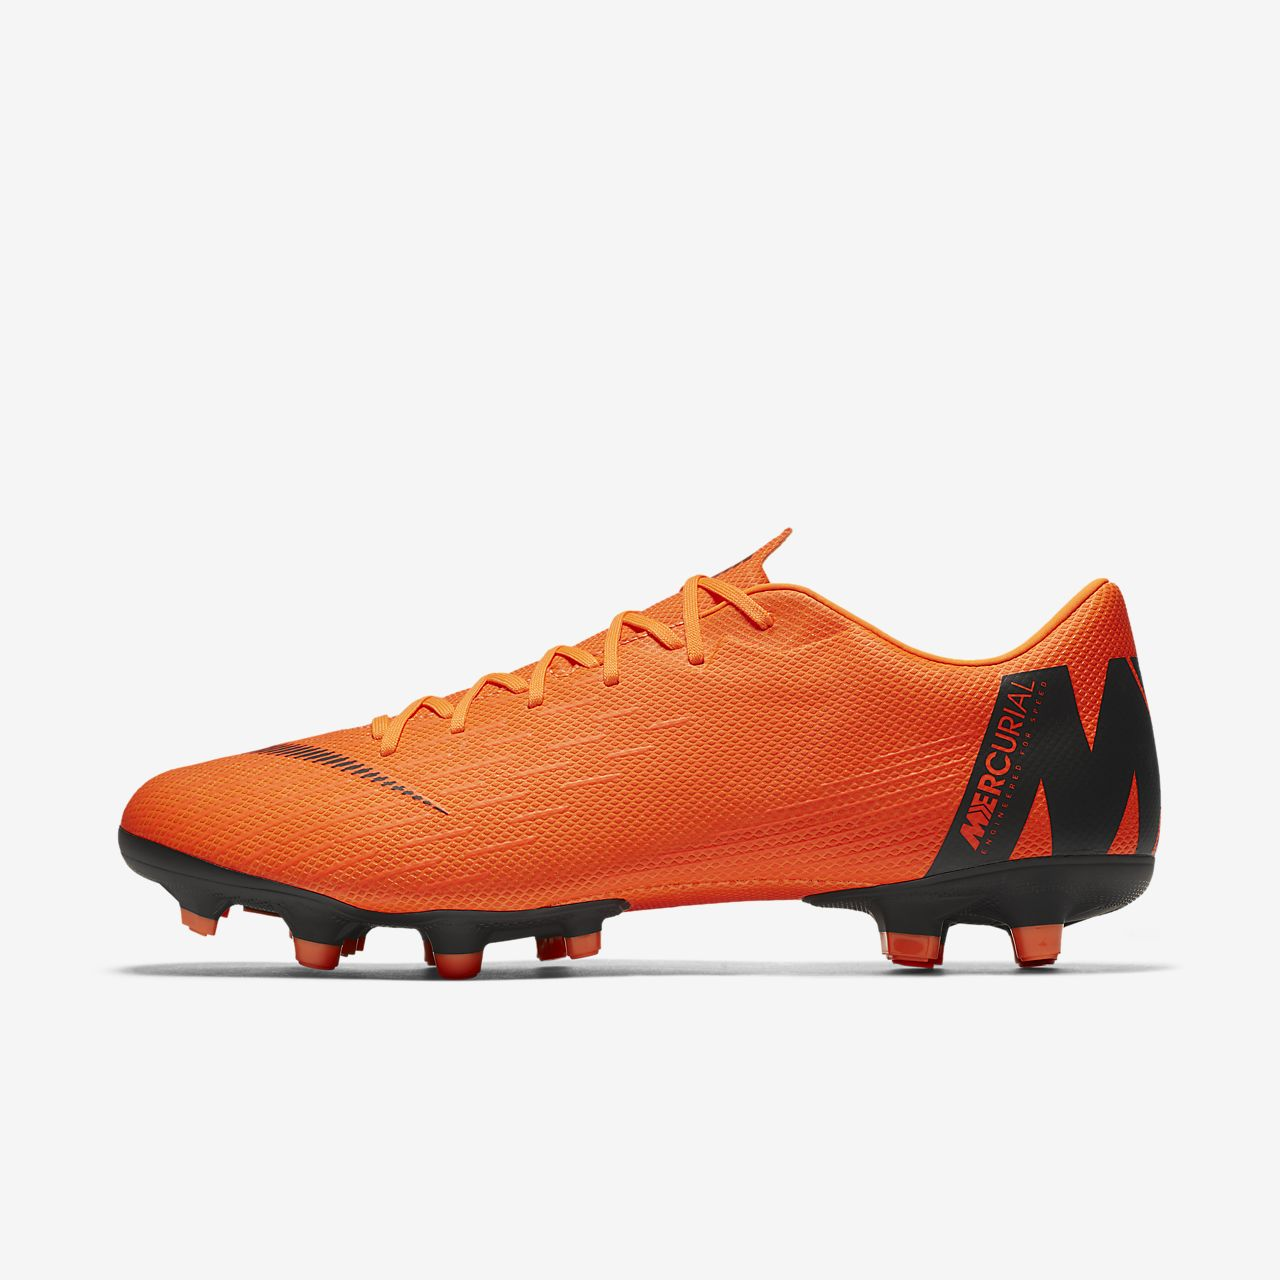 Nike Chaussures De Football Football Legend 7 Academy Fg 2018 Black/total Orange-Black-White 11 New Balance Chaussures WRT300 DC New Balance soldes Kanna Bottines 6640 suede Femme Cafe Kanna soldes G-Star Raw Chaussures D04360 F011rovulc Hb Wmn Sneakers Femme White G-Star Raw New Balance Chaussures WRT300 DA New Balance soldes ZjEw4KwgV